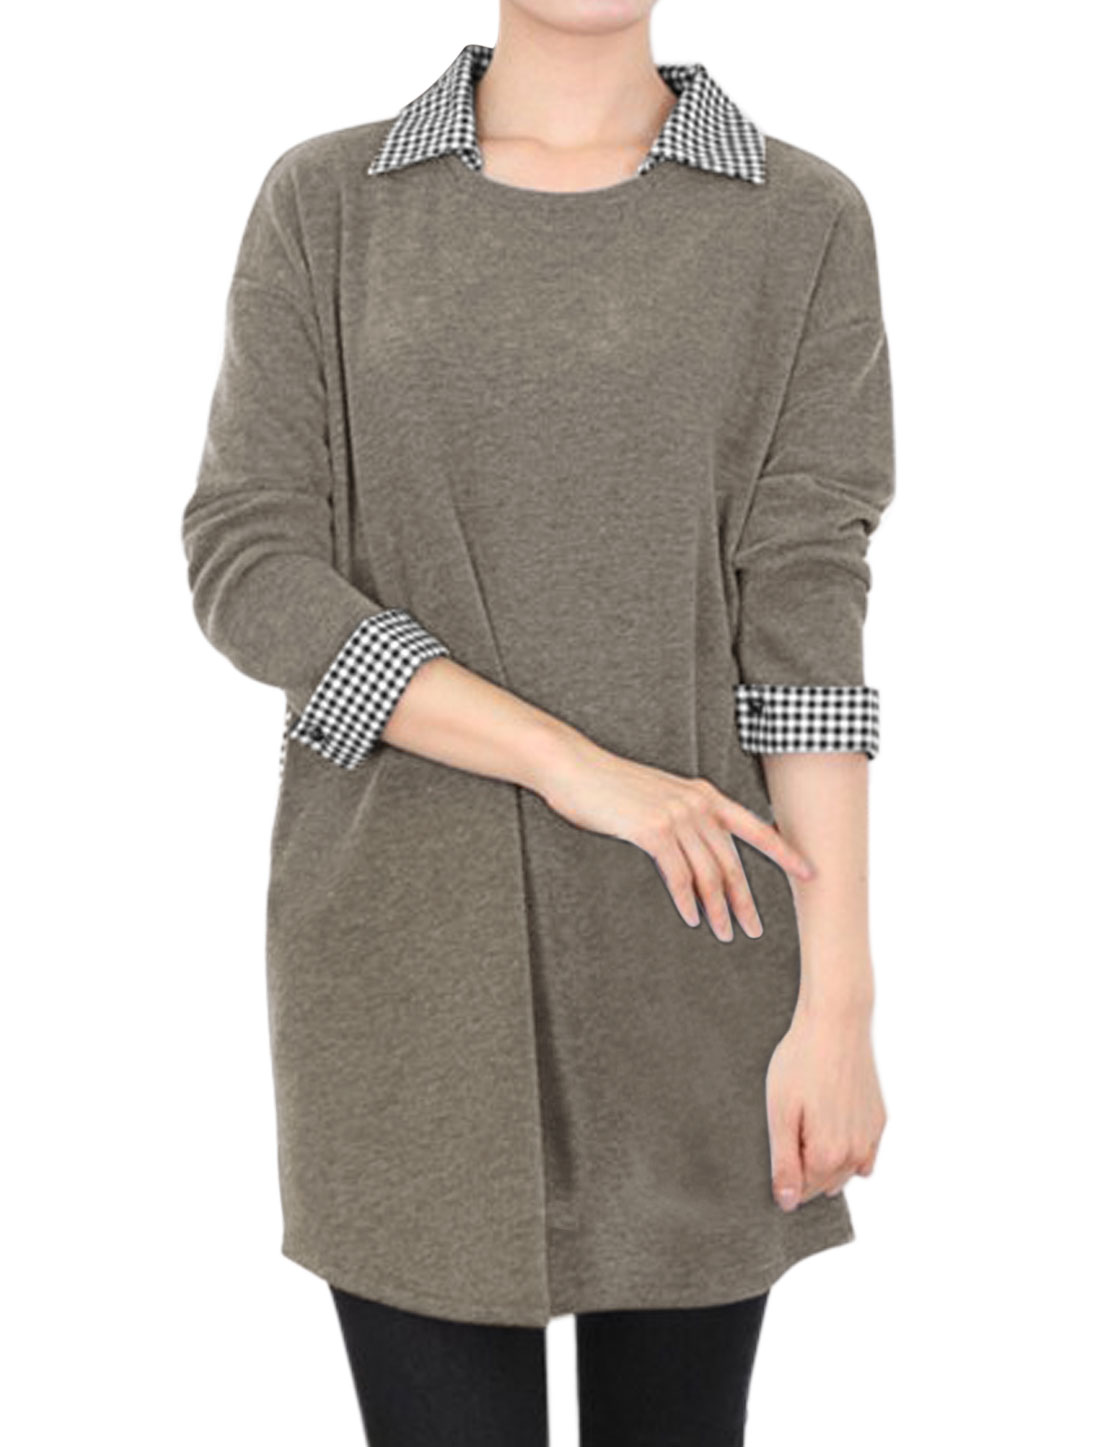 Women Plaid Collared Two Pockets Paneled Tunic Top Gray S